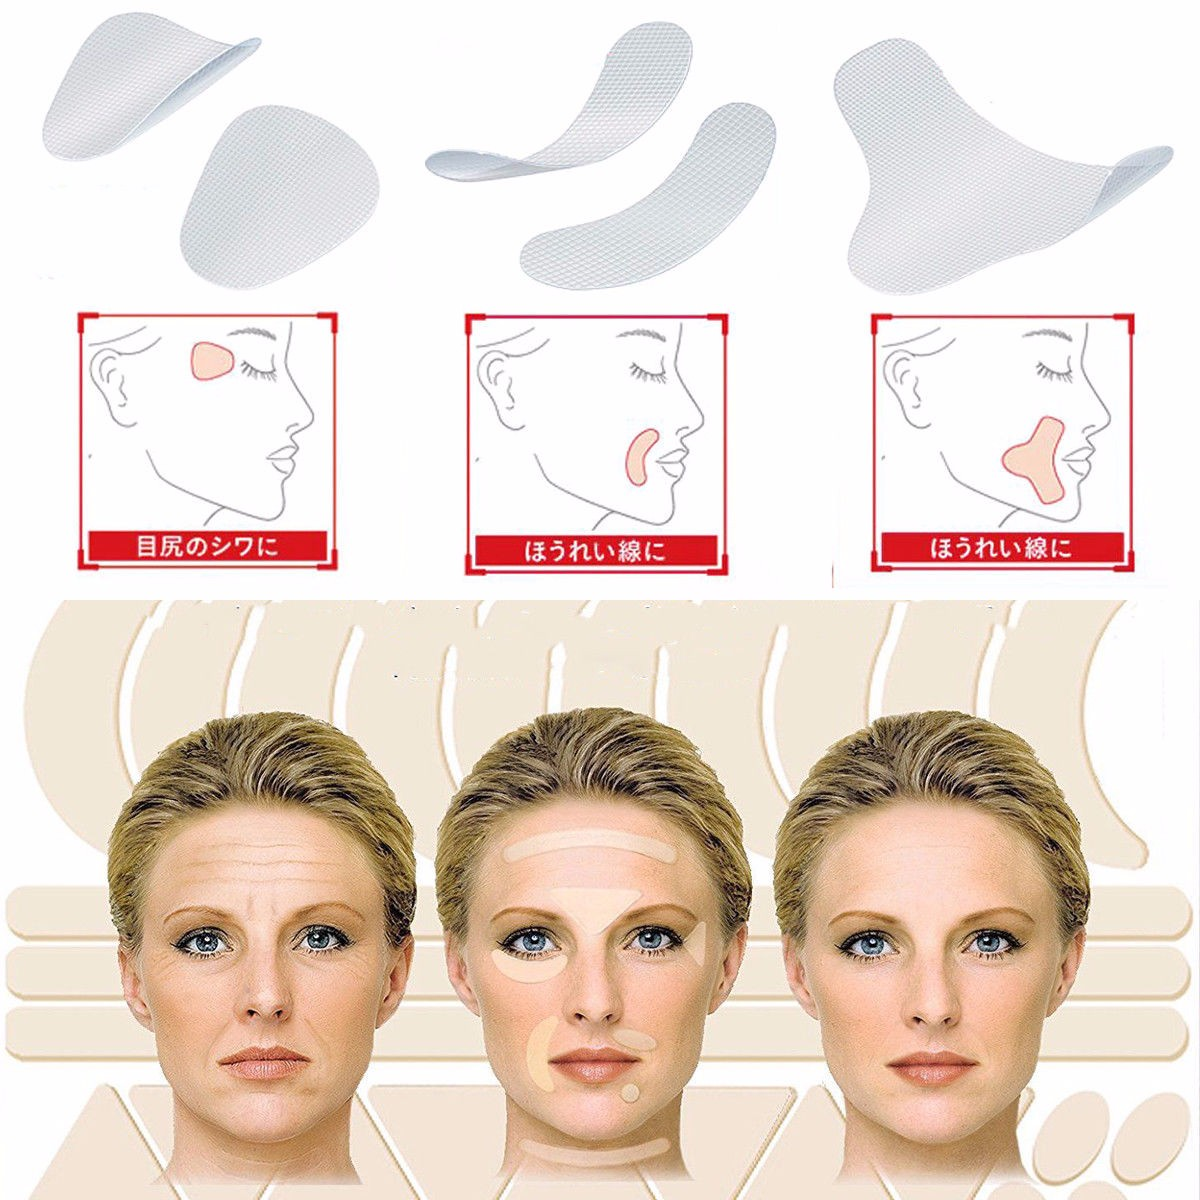 Women Facial Anti Wrinkle Sagging Skin Care Lift Up Pads Tape V-Shape Face Frown Lines Fast Lifting Makeup Wrinkle Remove Tools(China)